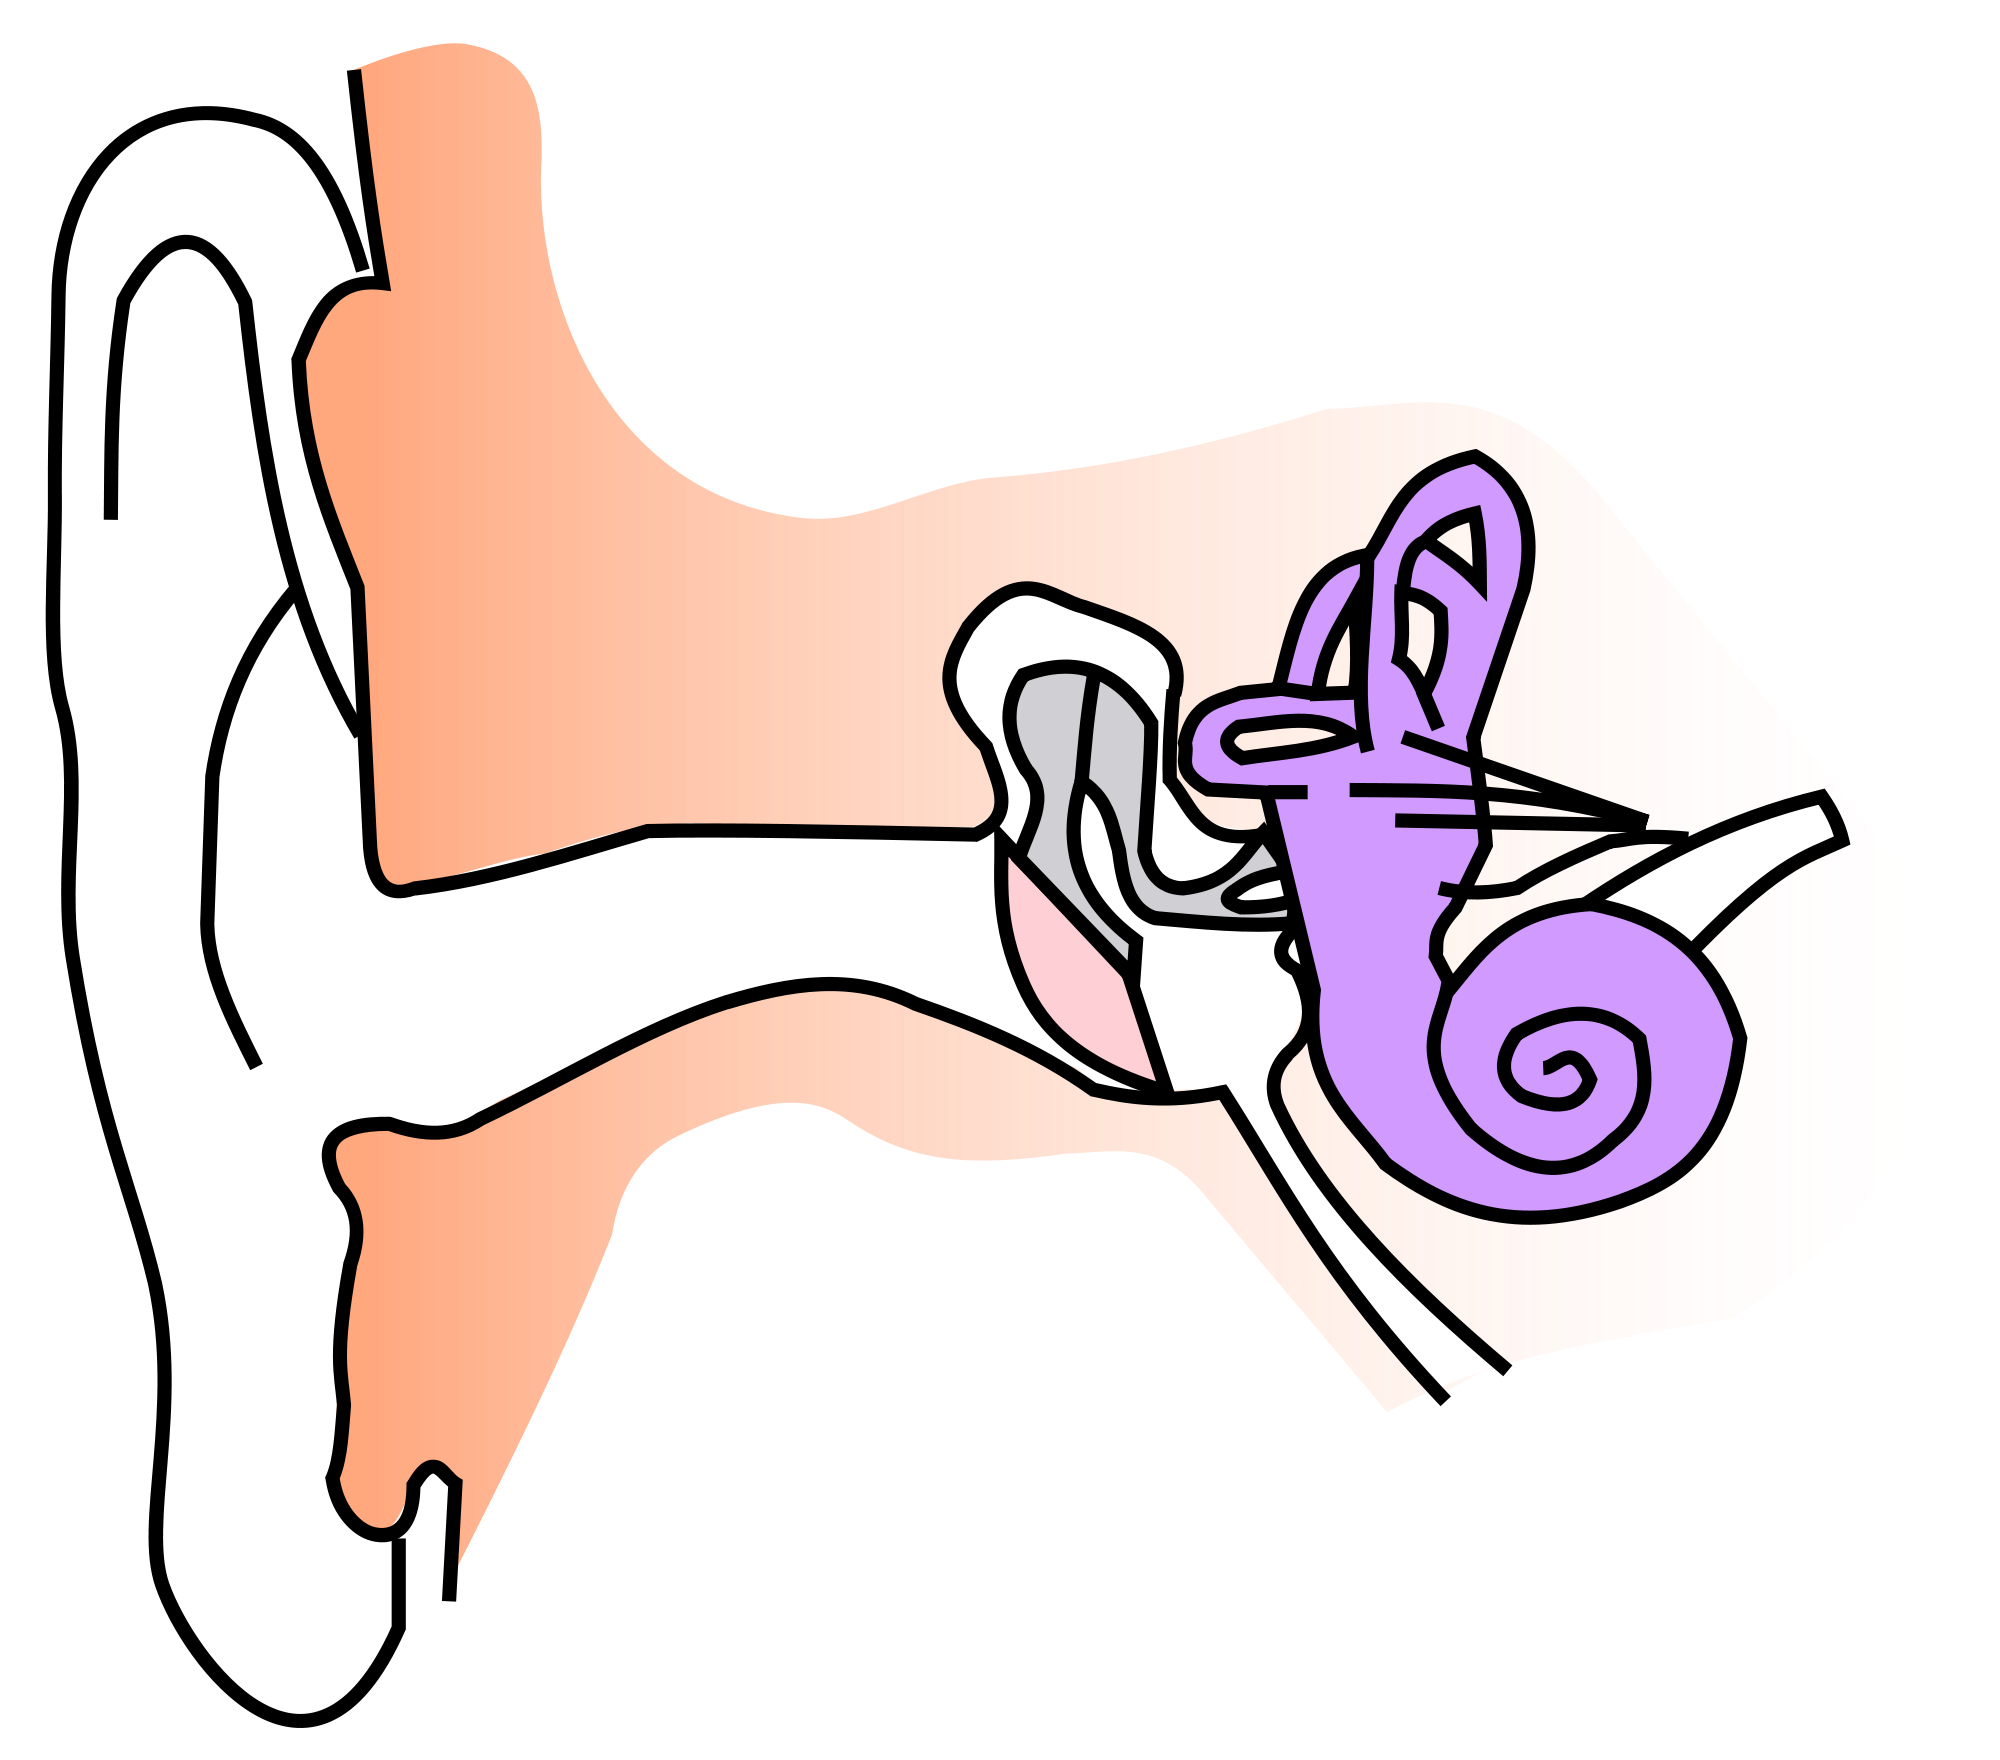 Ears clipart anatomy. File ear notext small